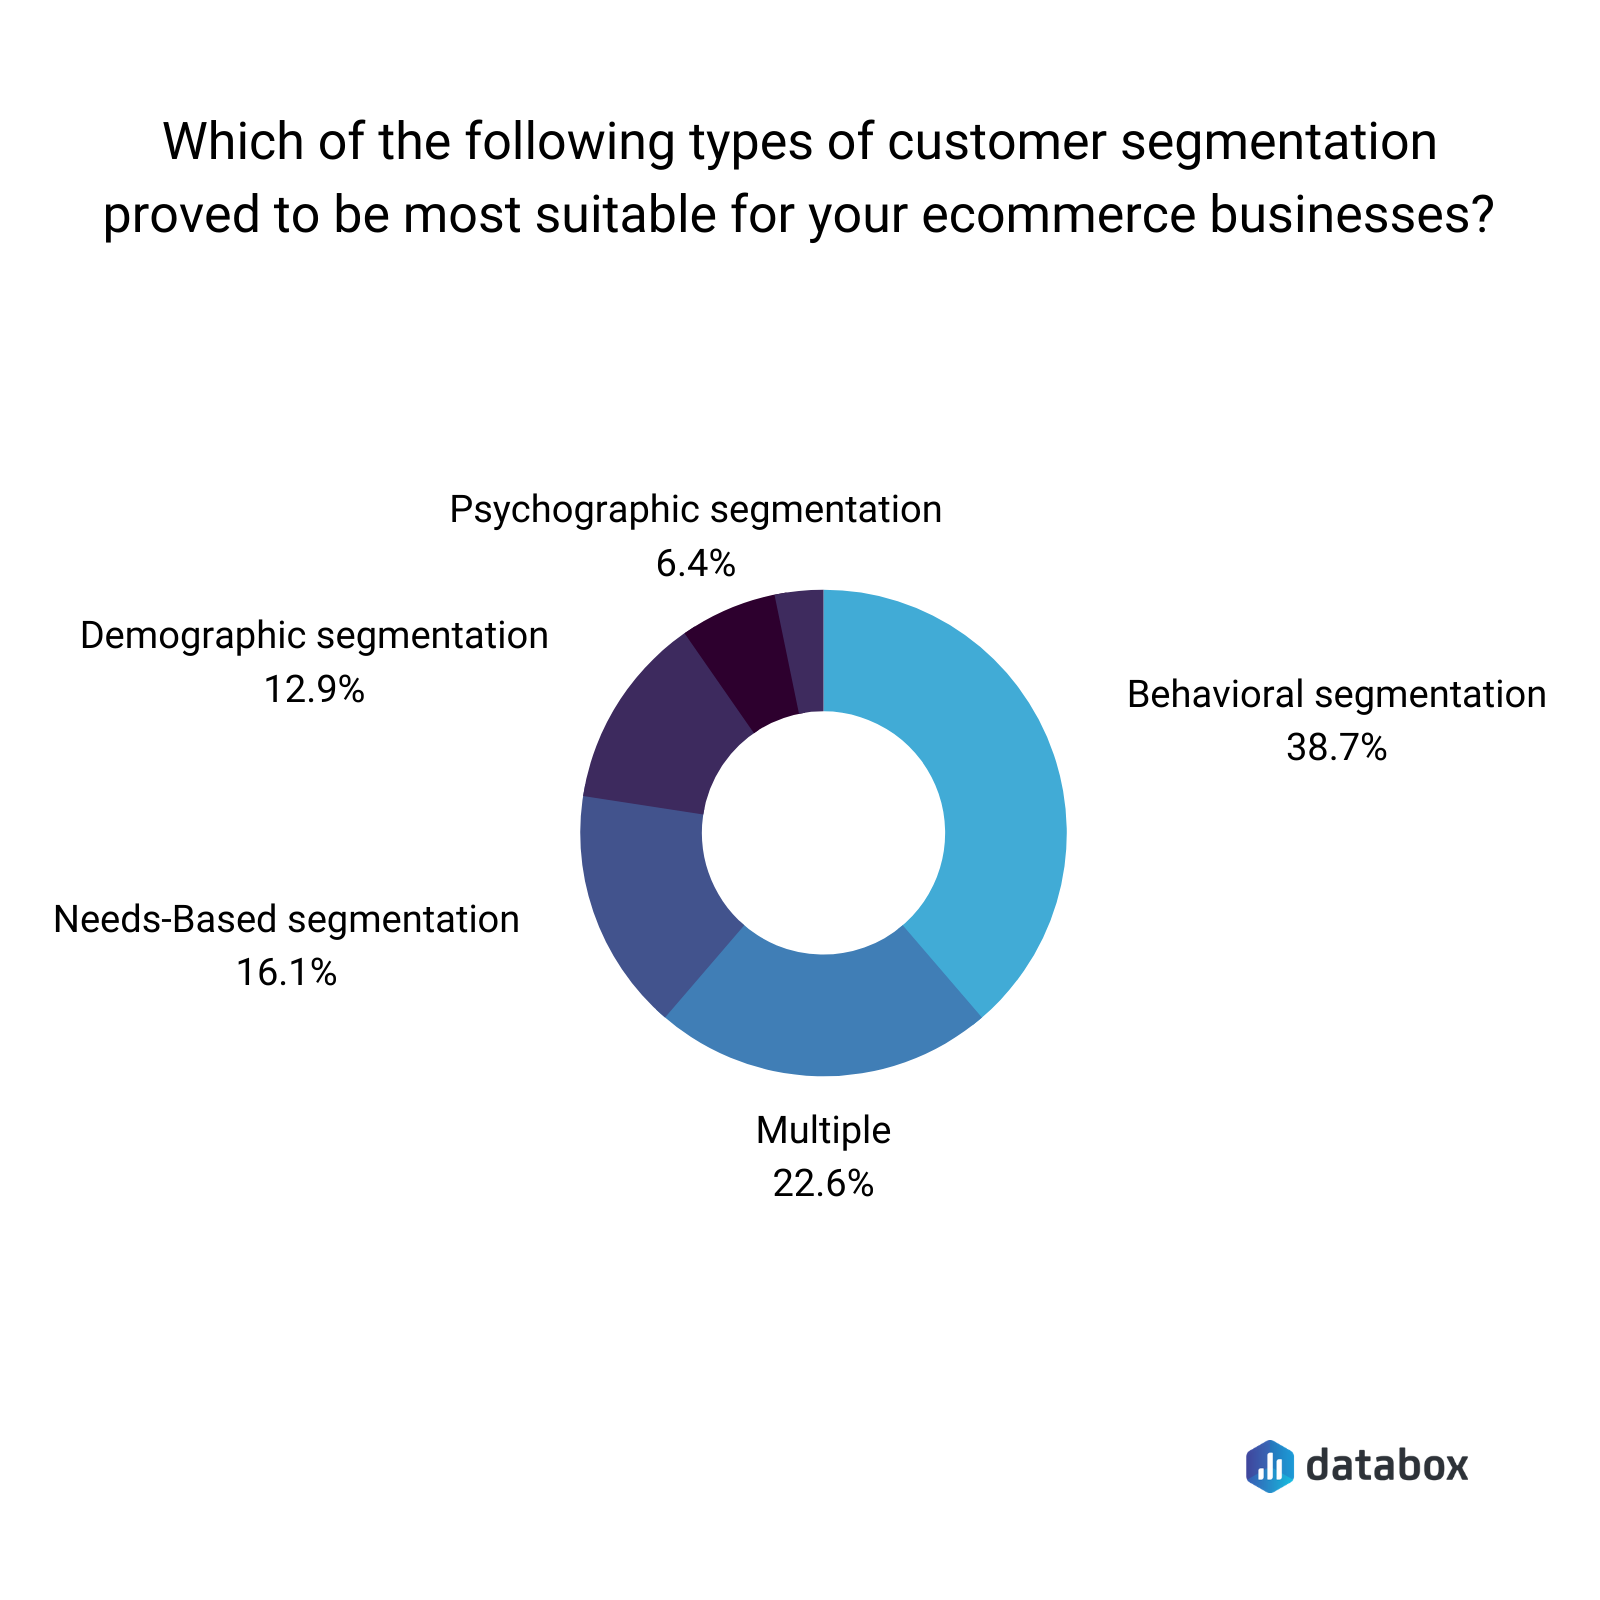 Commonly used customer segmentation types for ecommerce business